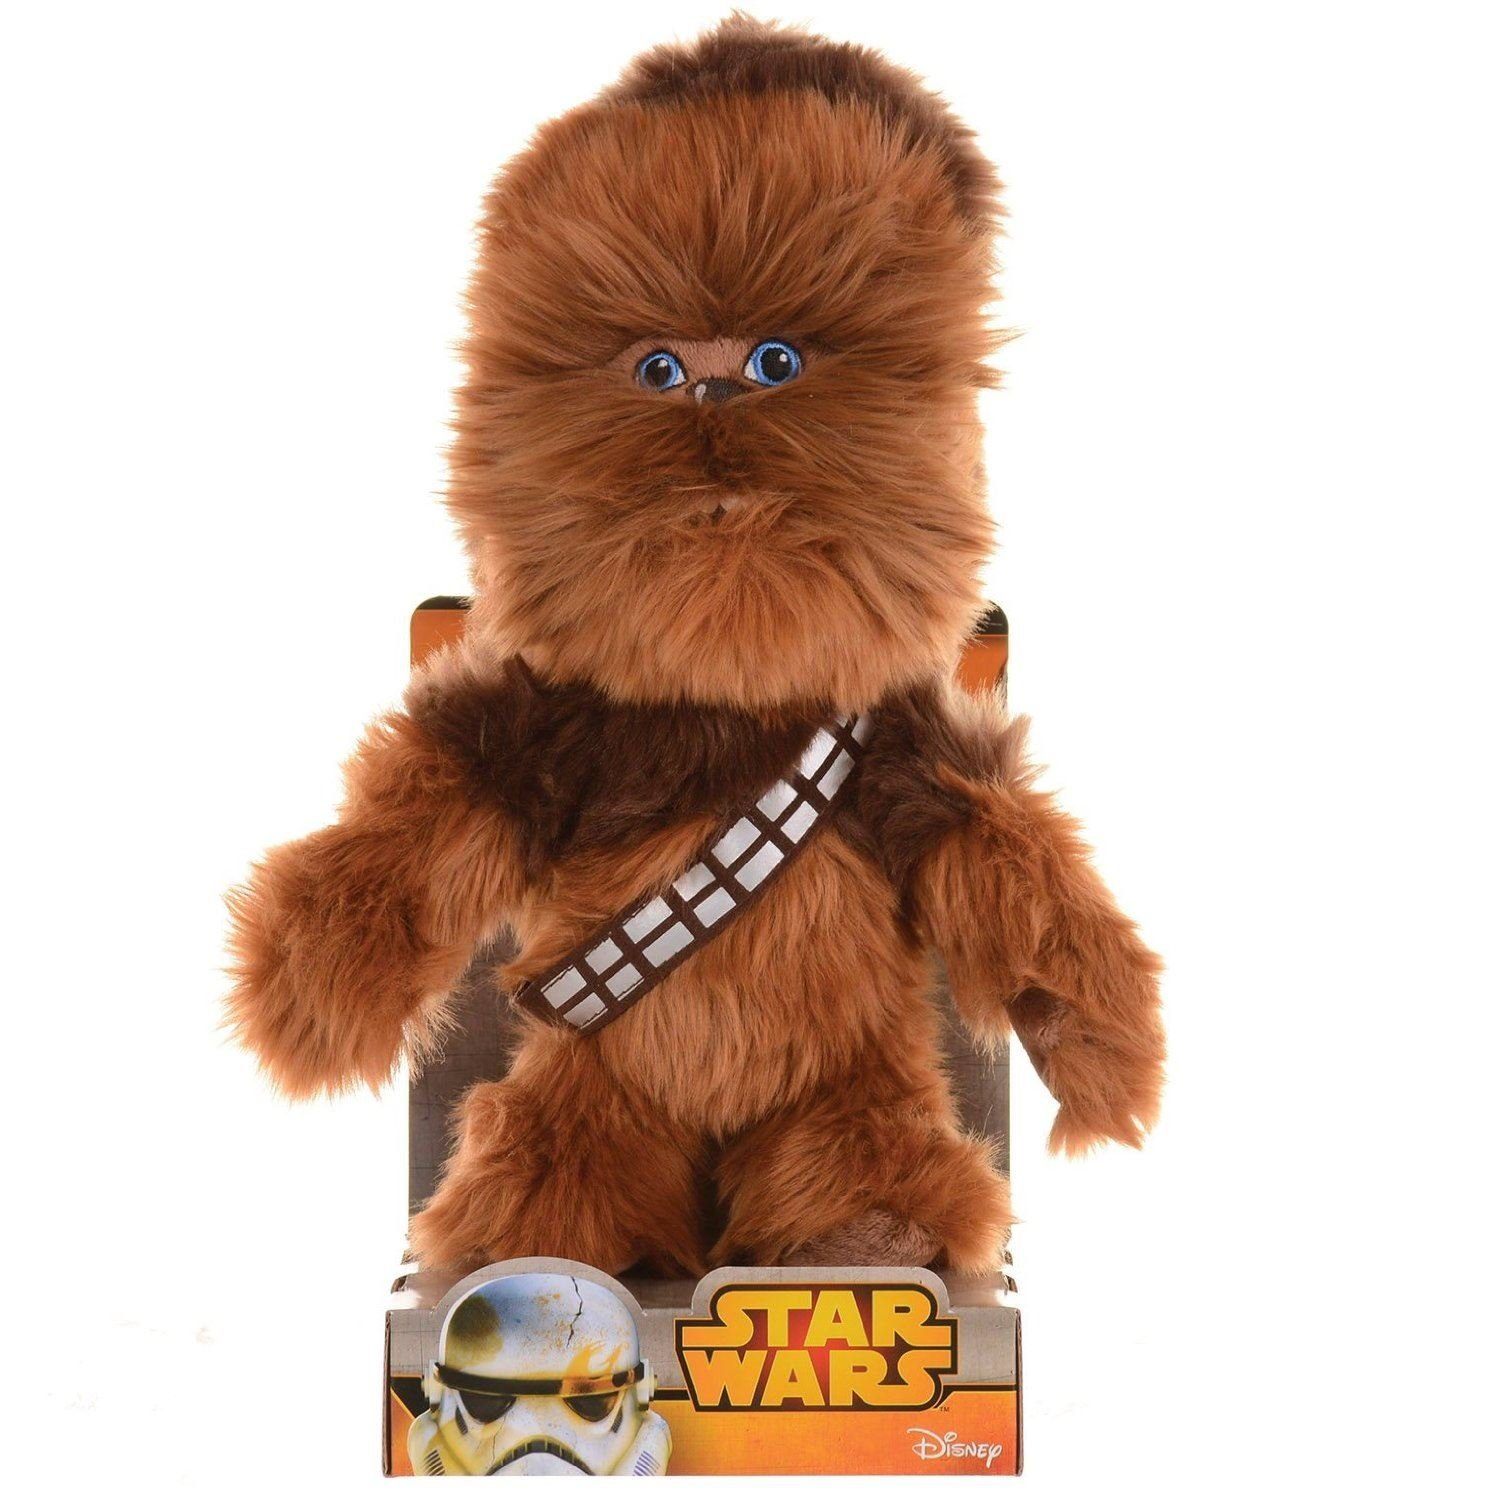 nicotoy 5873904 peluche star wars chewbacca 25cm peluche. Black Bedroom Furniture Sets. Home Design Ideas